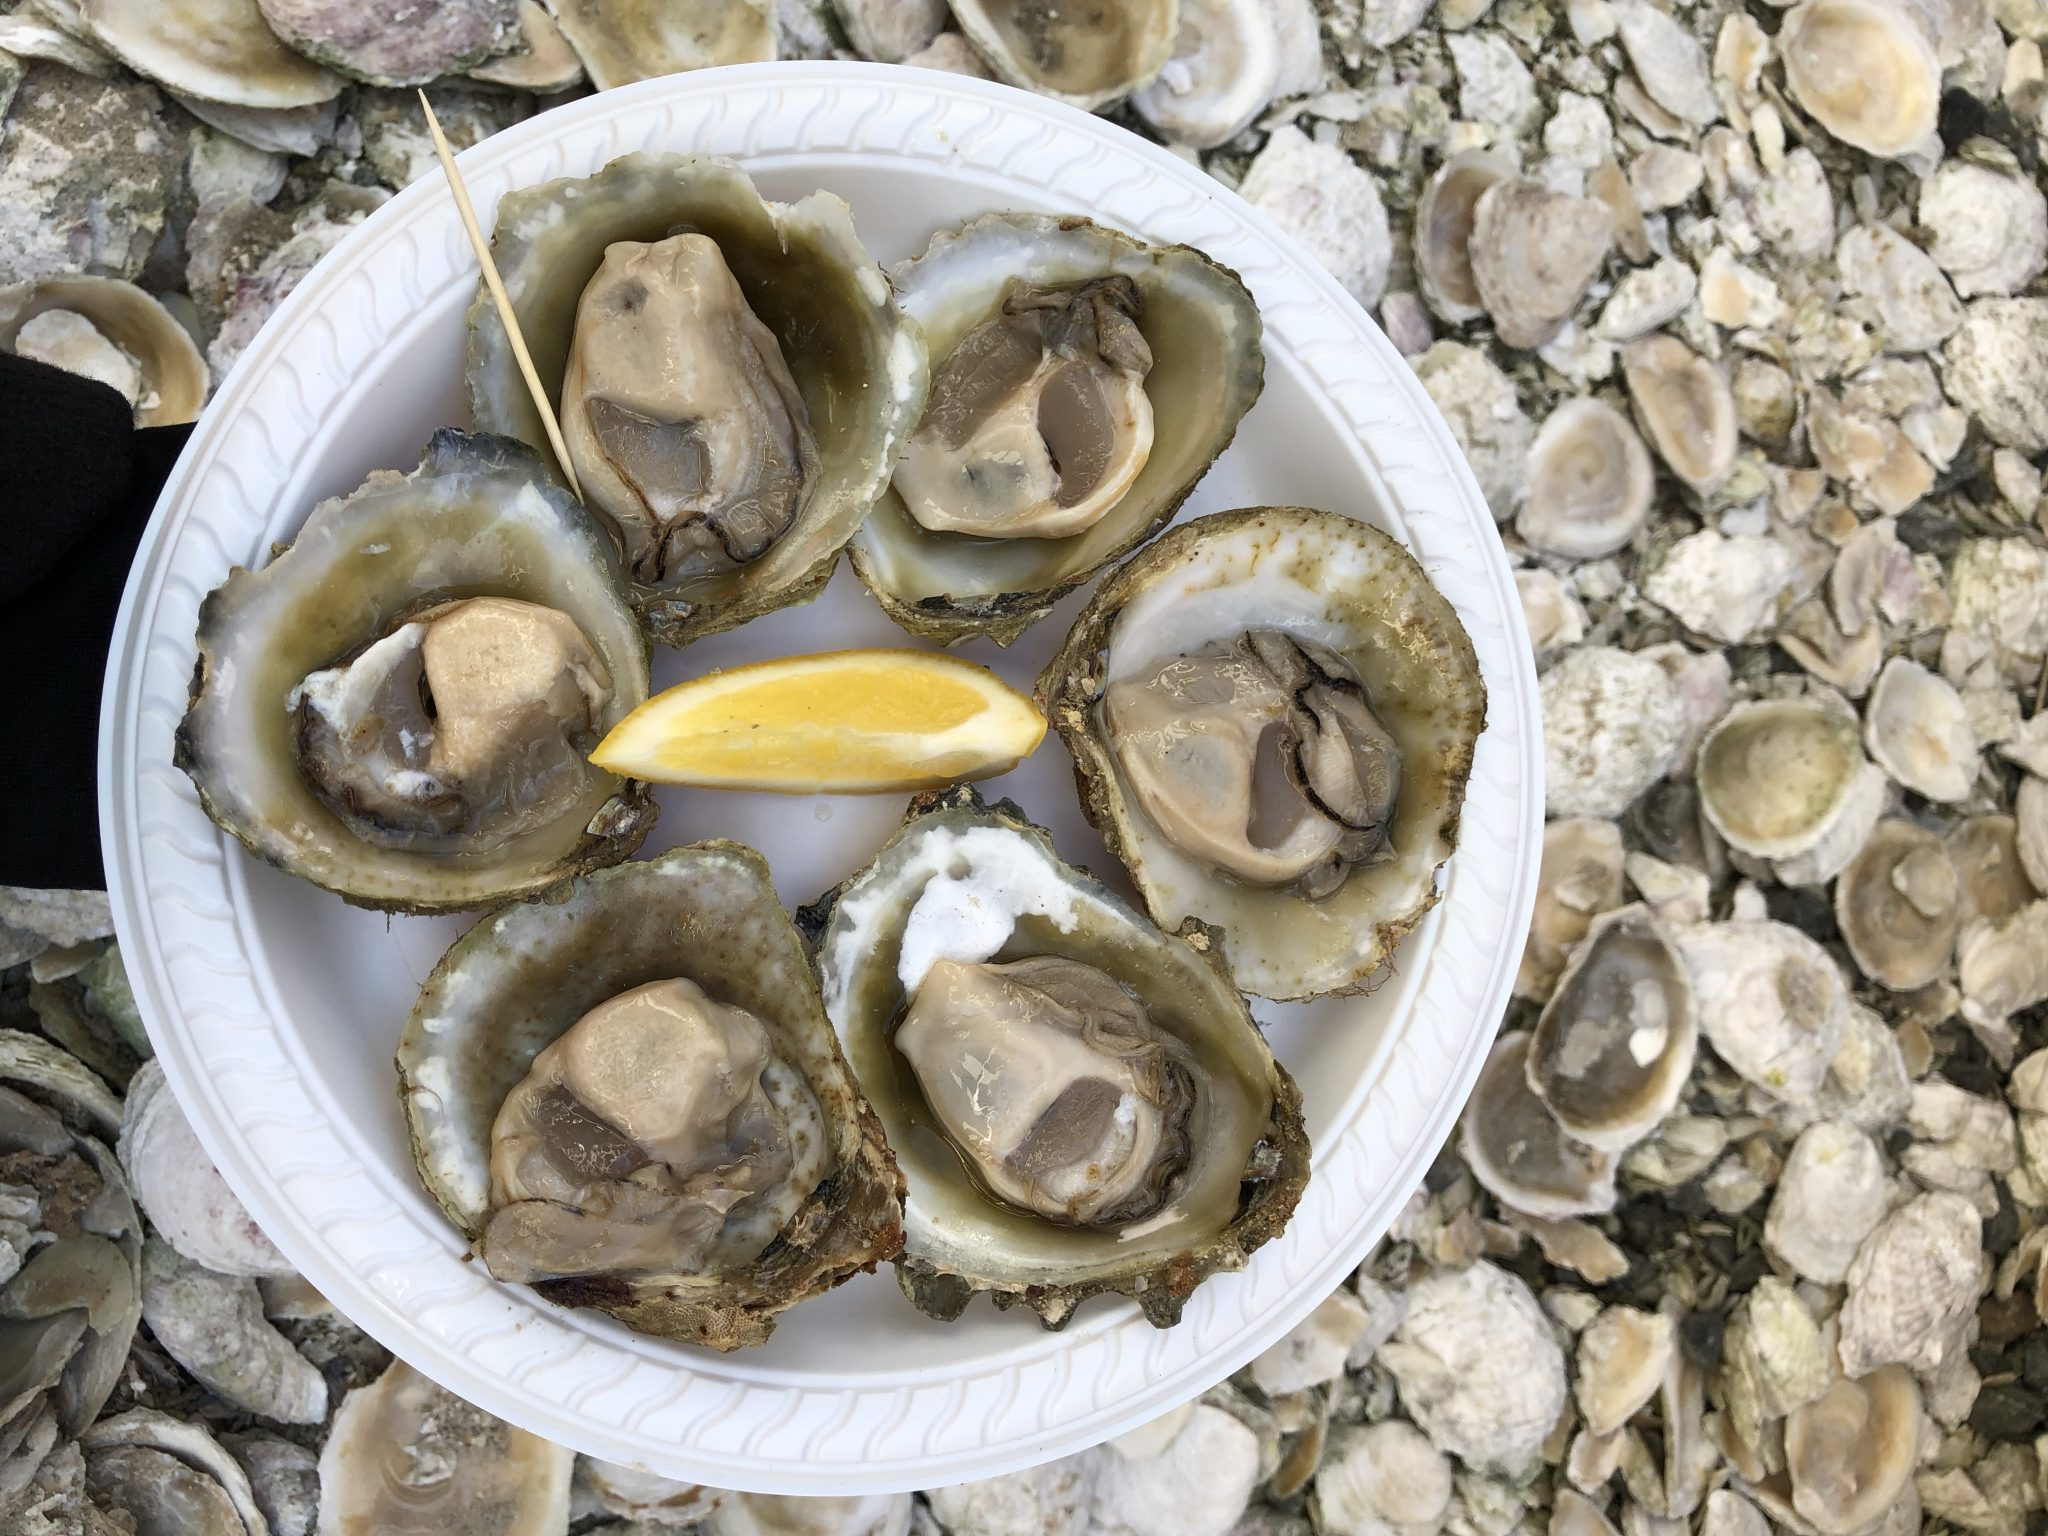 Plate of Bluff Oysters at Bluff Oyster and Food Festival